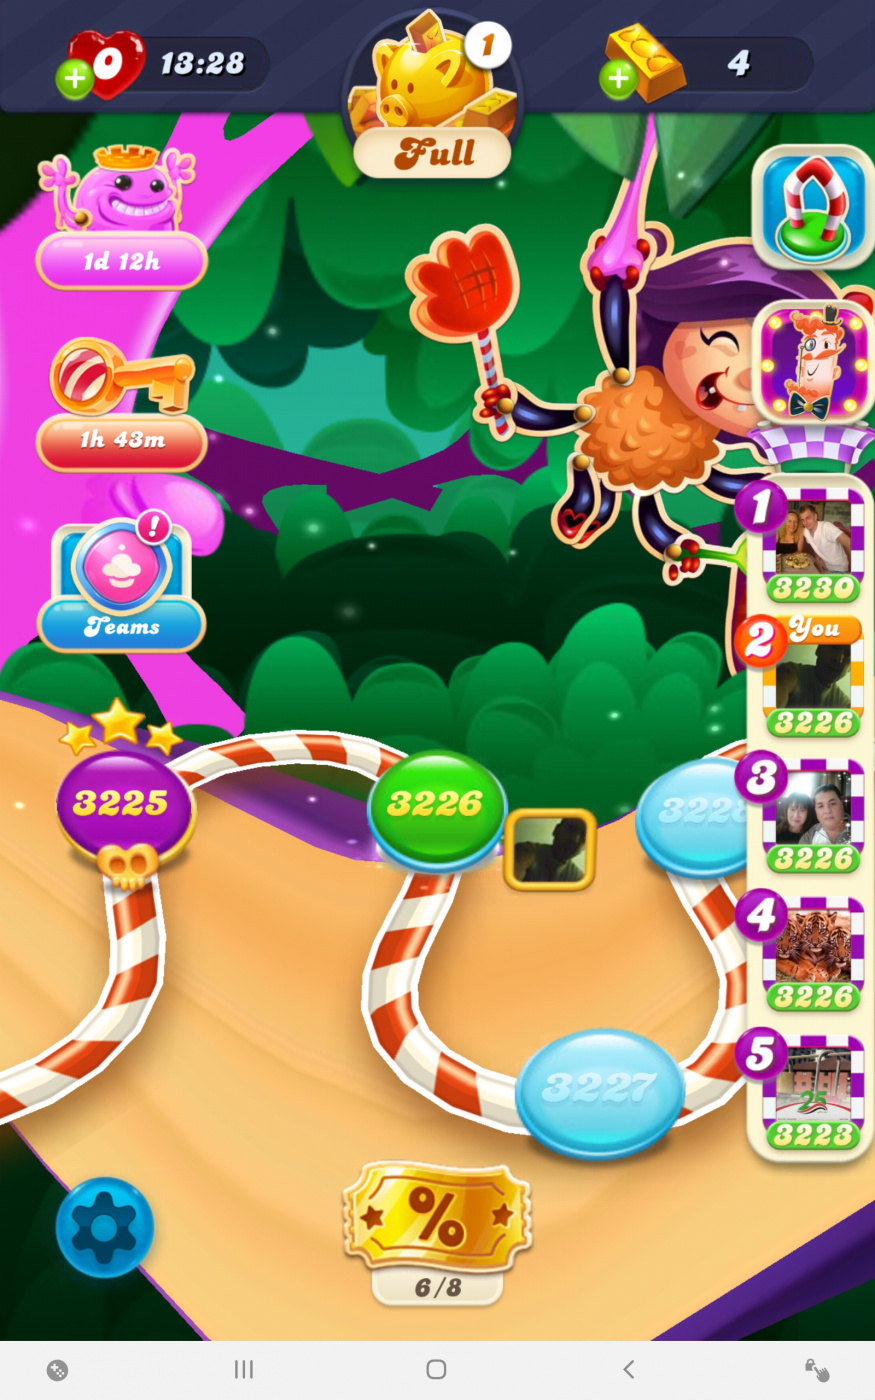 Screenshot_20200801-133223_Candy Crush Soda.jpg